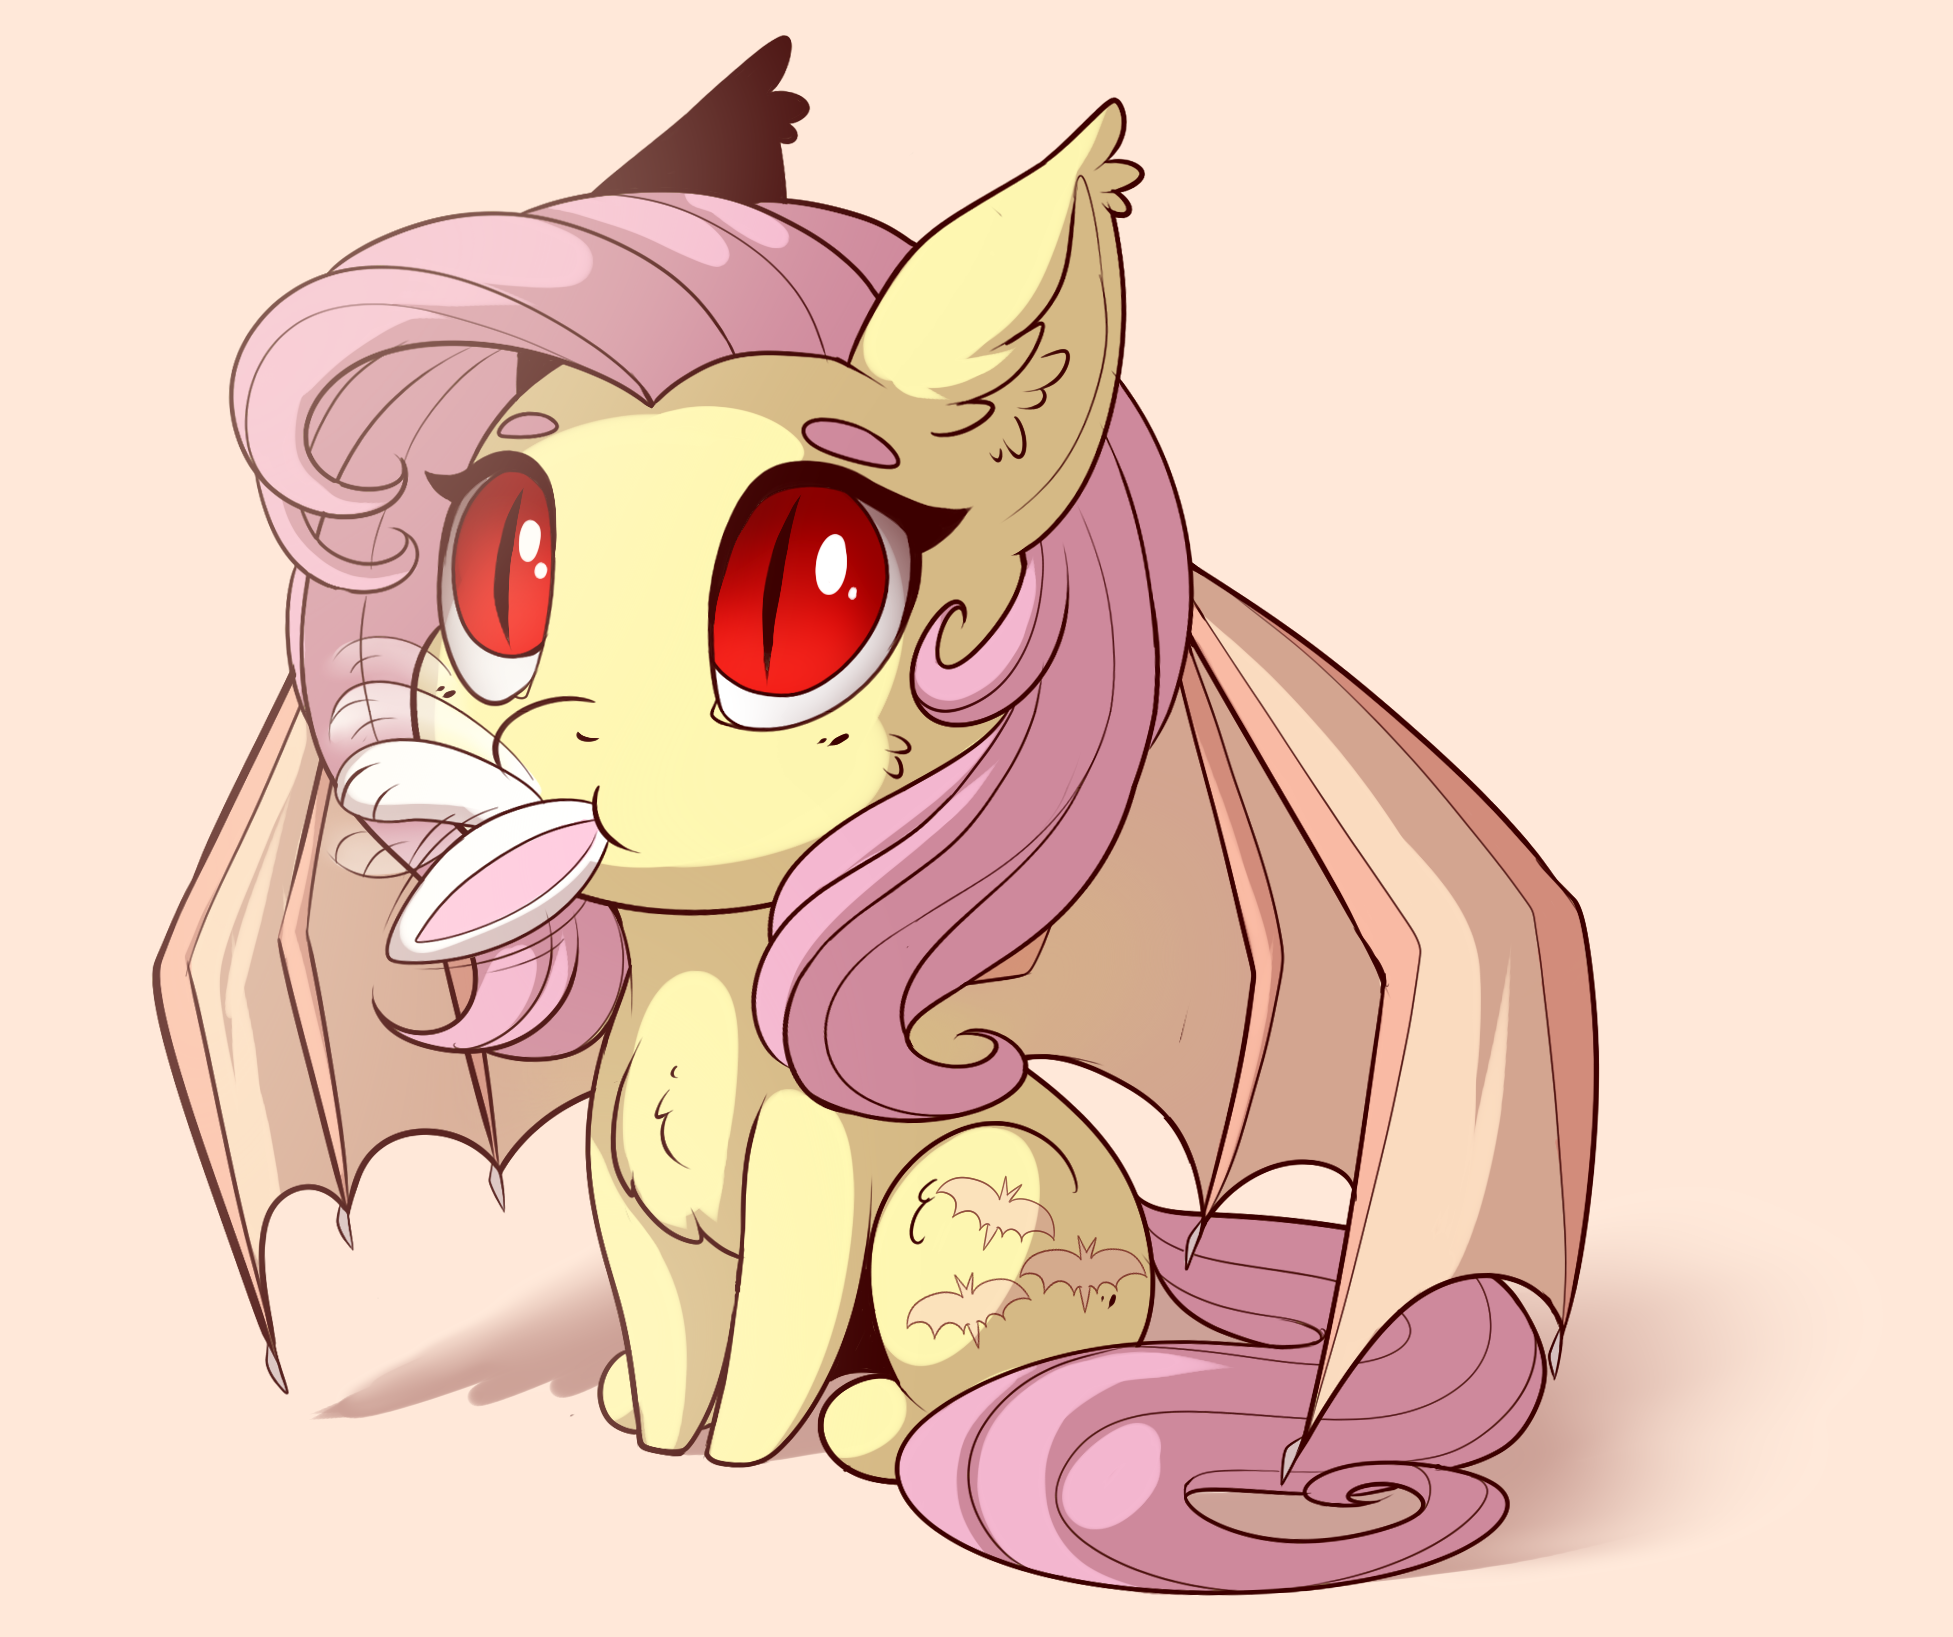 noms_by_evehly-daso1cp.png